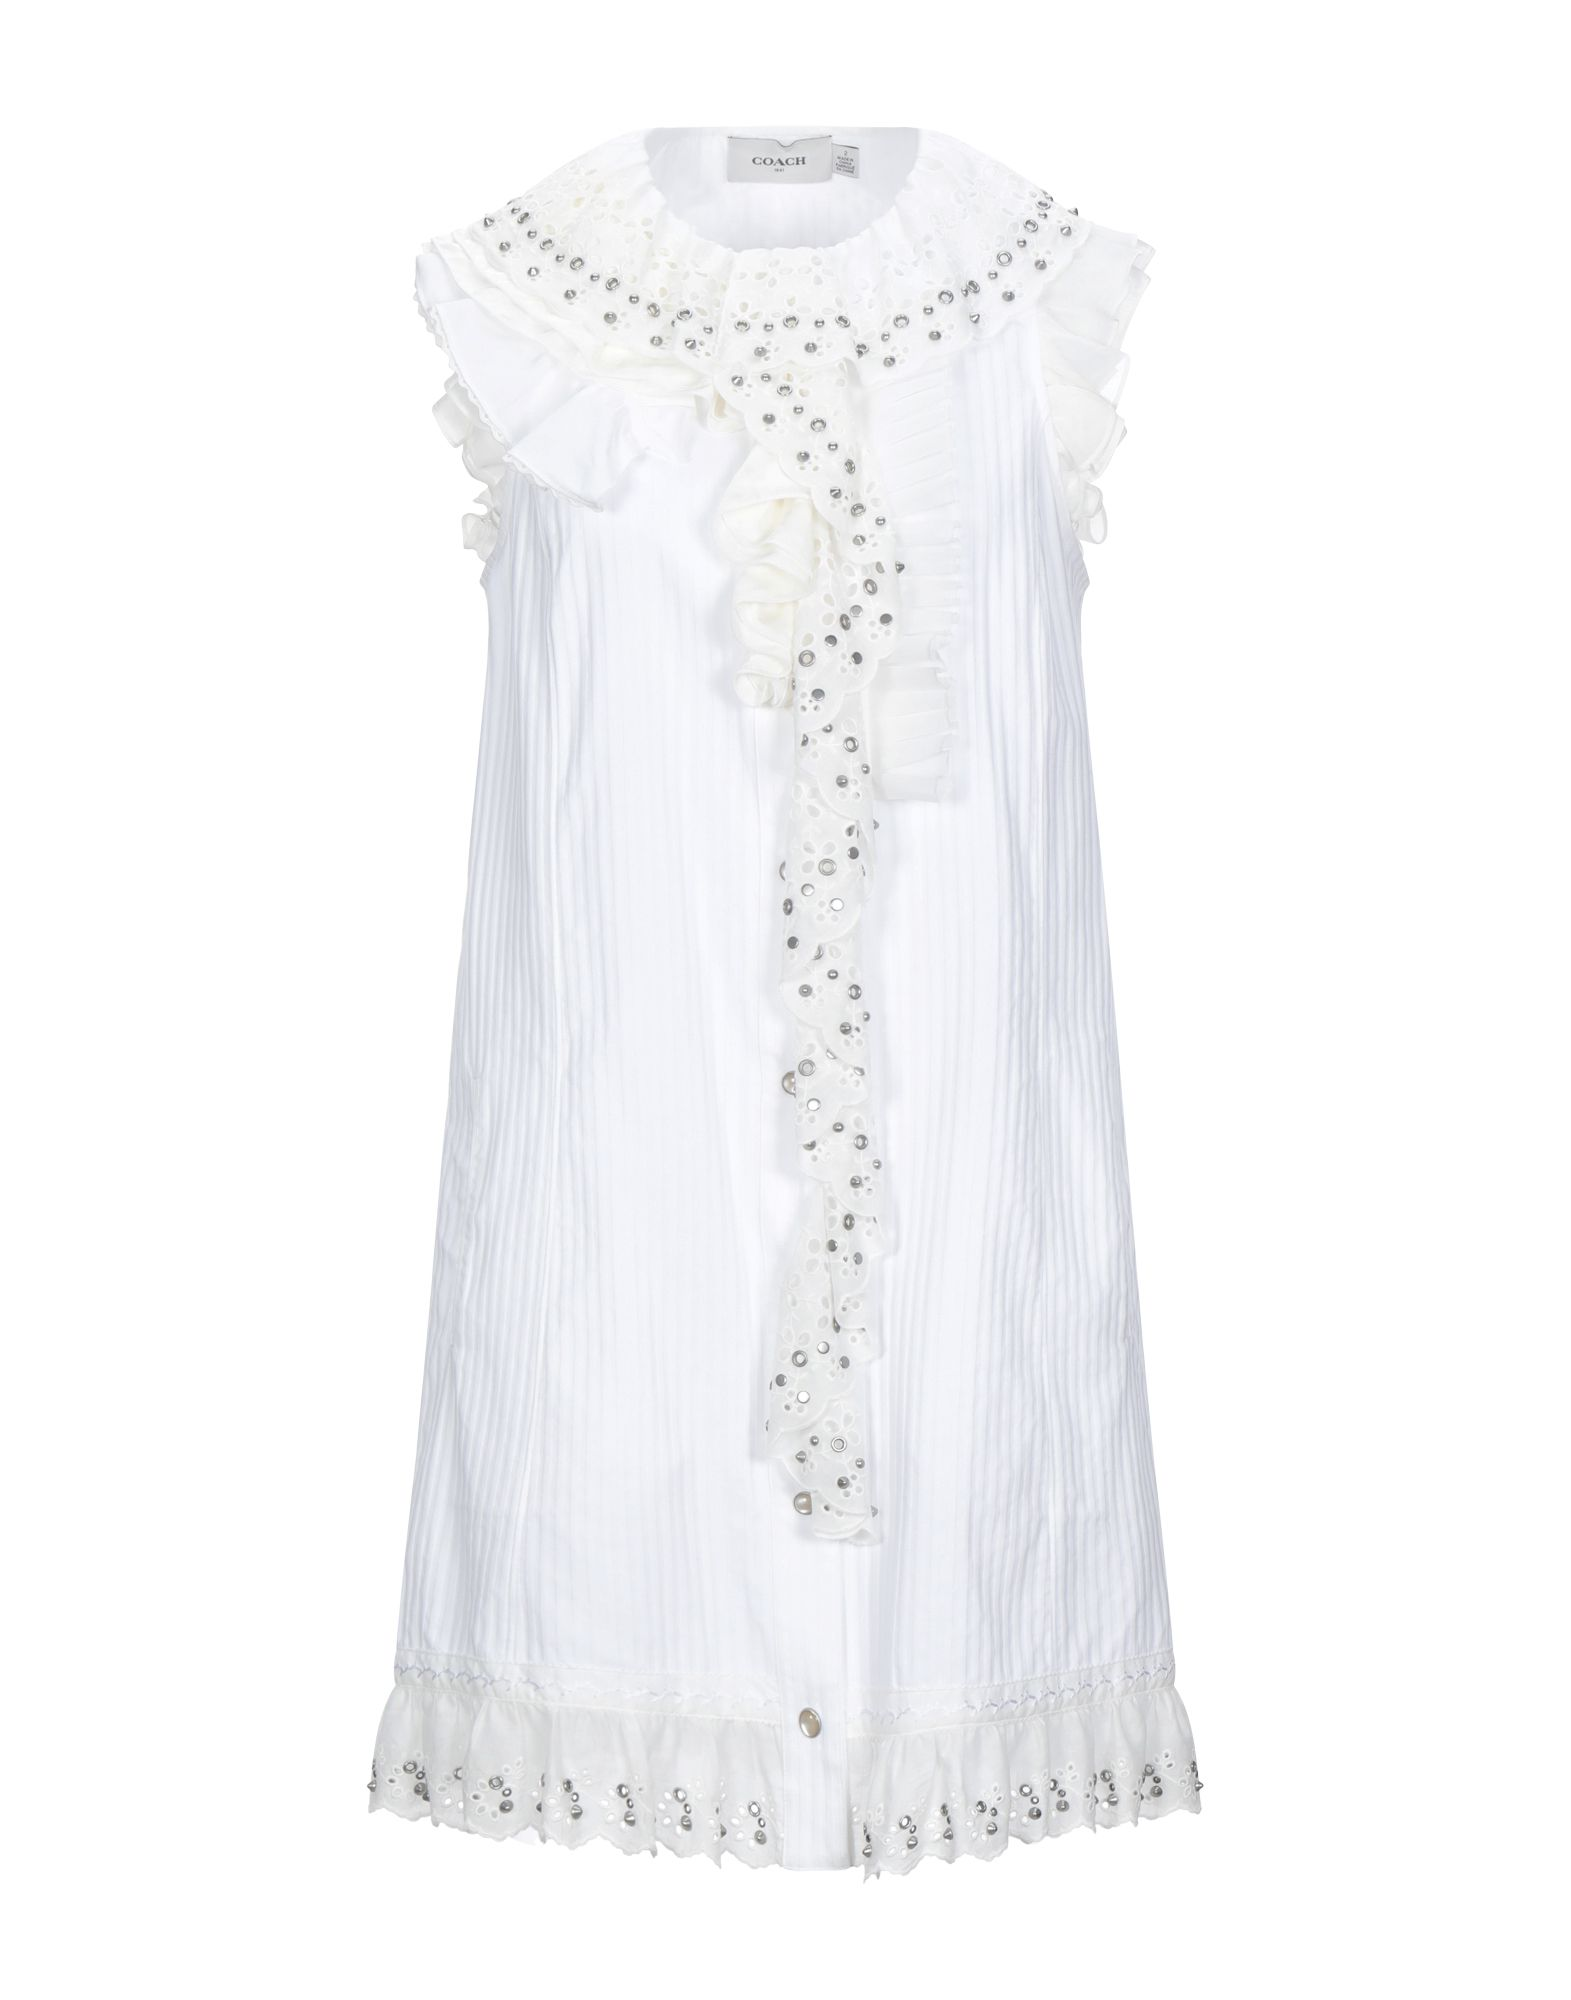 COACH Short dresses. lace, plain weave, ruffles, studs, solid color, round collar, short sleeves, no pockets, front closure, snap buttons fastening, unlined. 100% Cotton